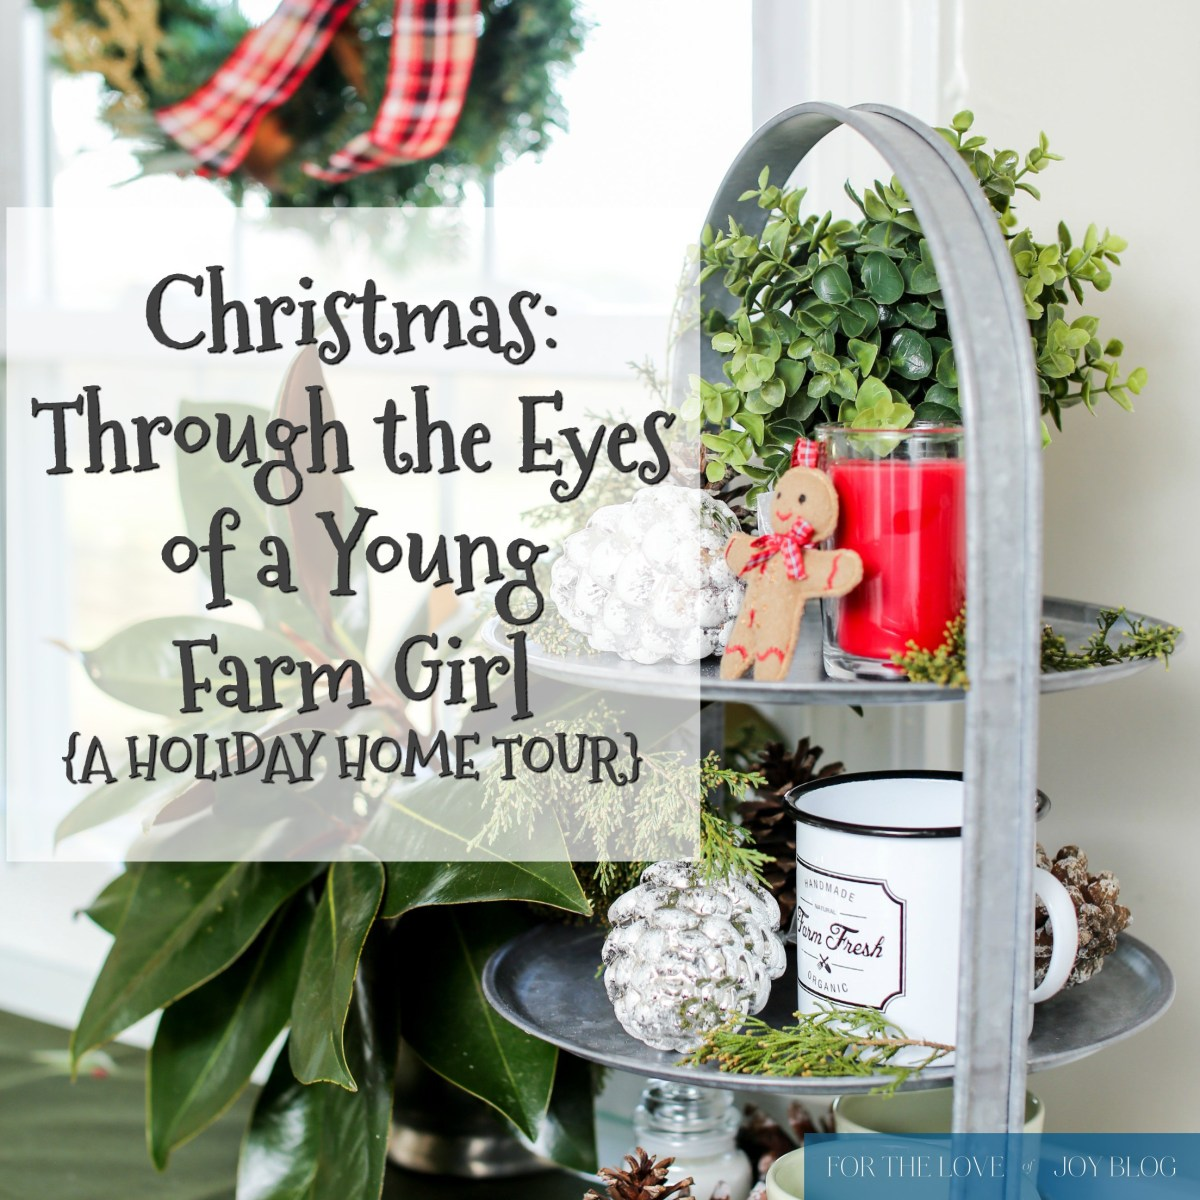 Christmas: Through the Eyes of a Young Farm Girl